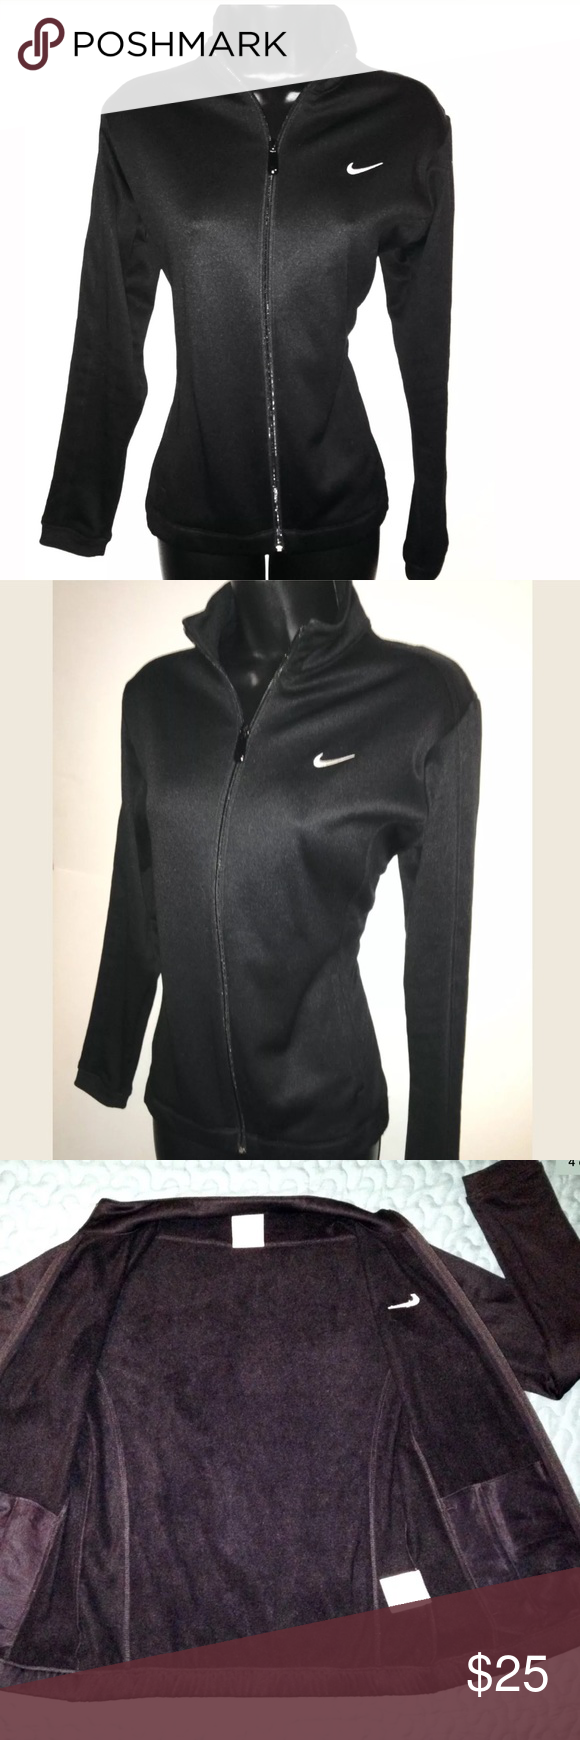 Nike Therma Fit Women's Jacket